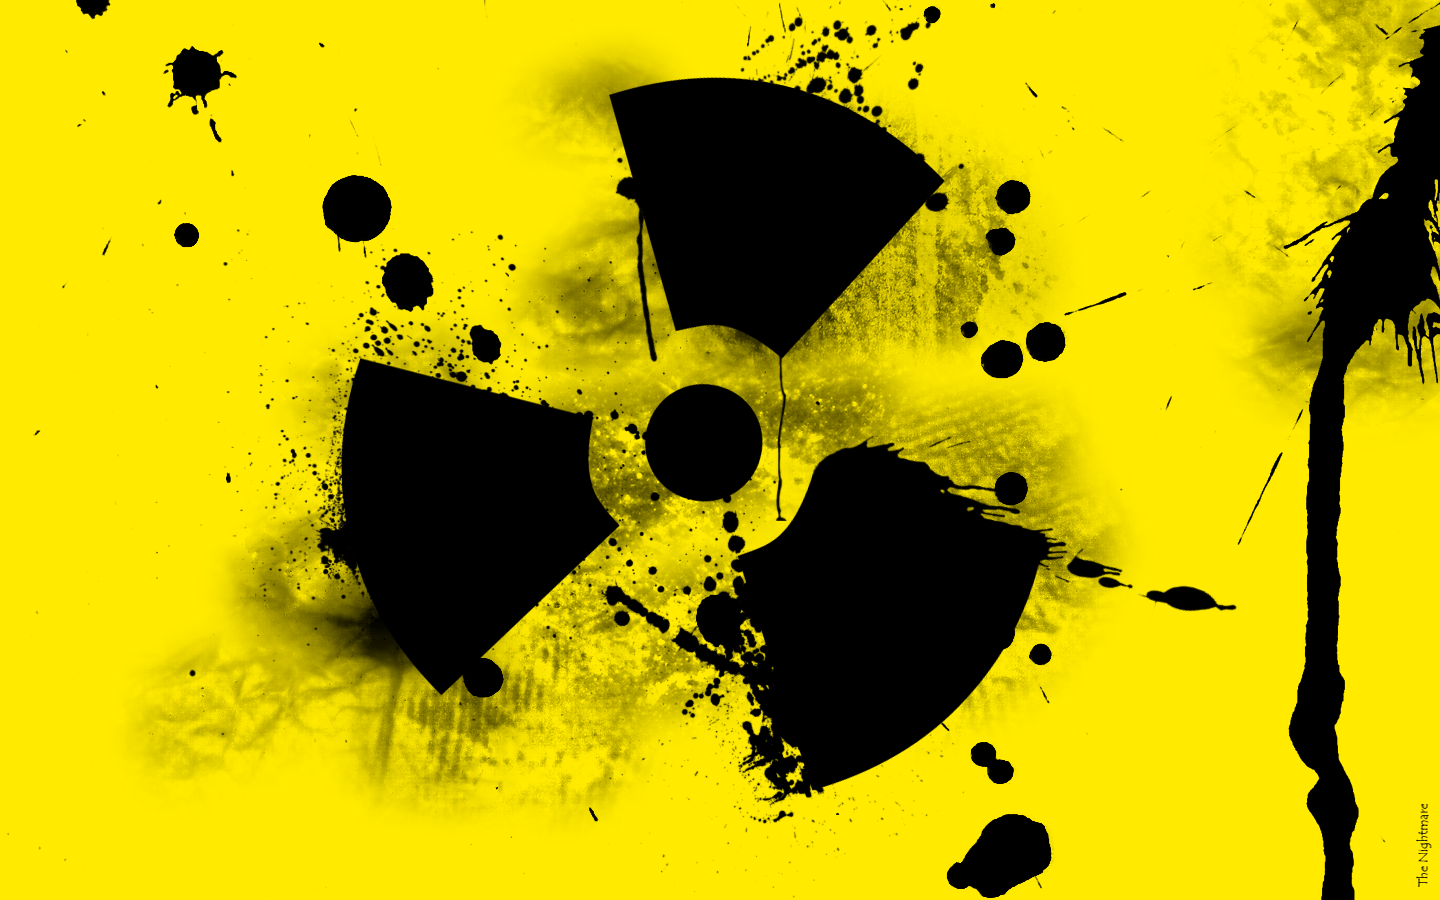 Radioactive Symbol Wallpaper Wallpapersafari